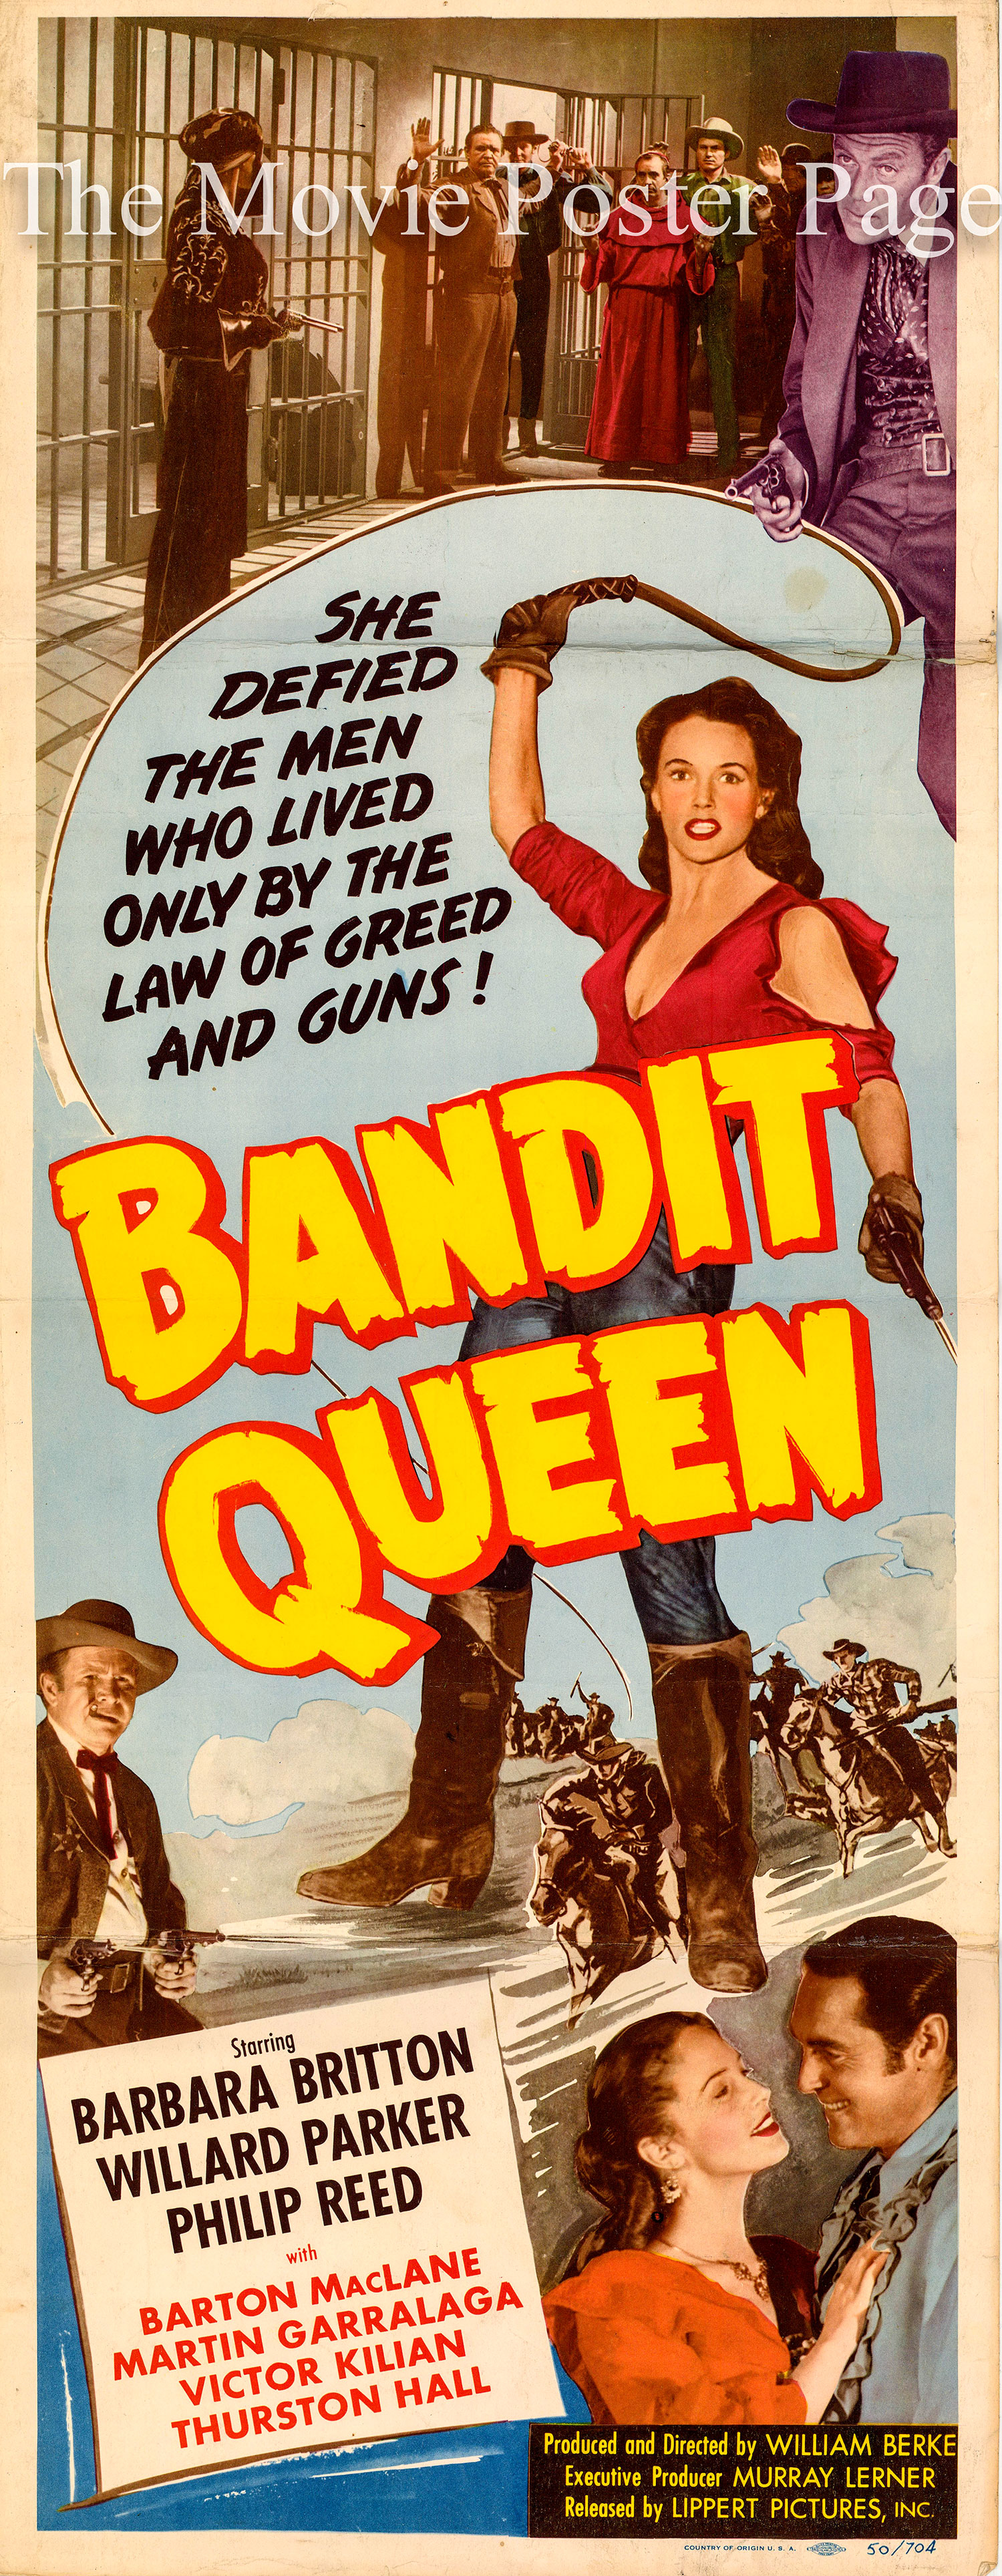 Free Download Bandit Queen Songspk.Com